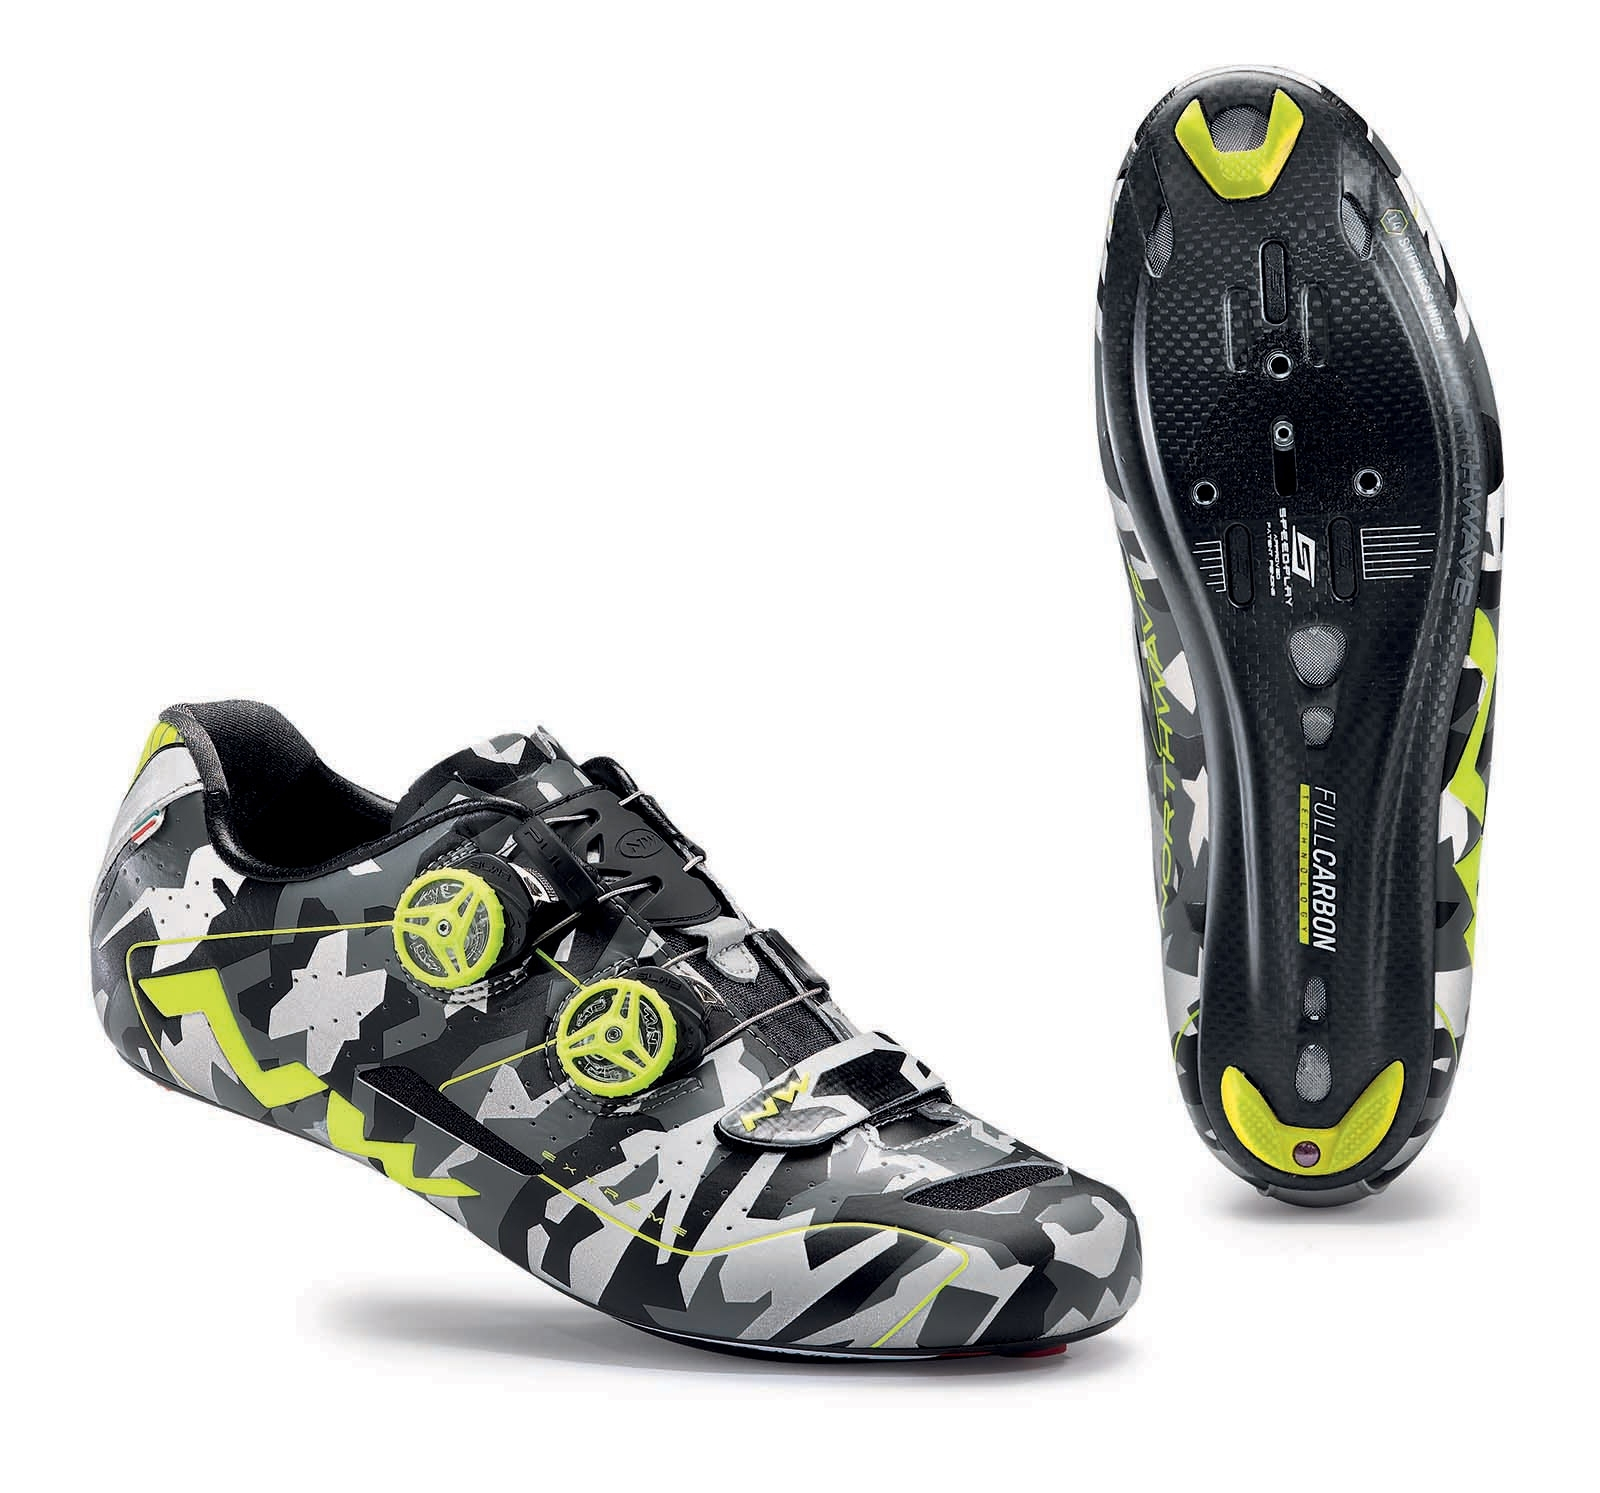 NORTHWAVE Man road cycling shoes EXTREME reflective camouflage/fluo yellow